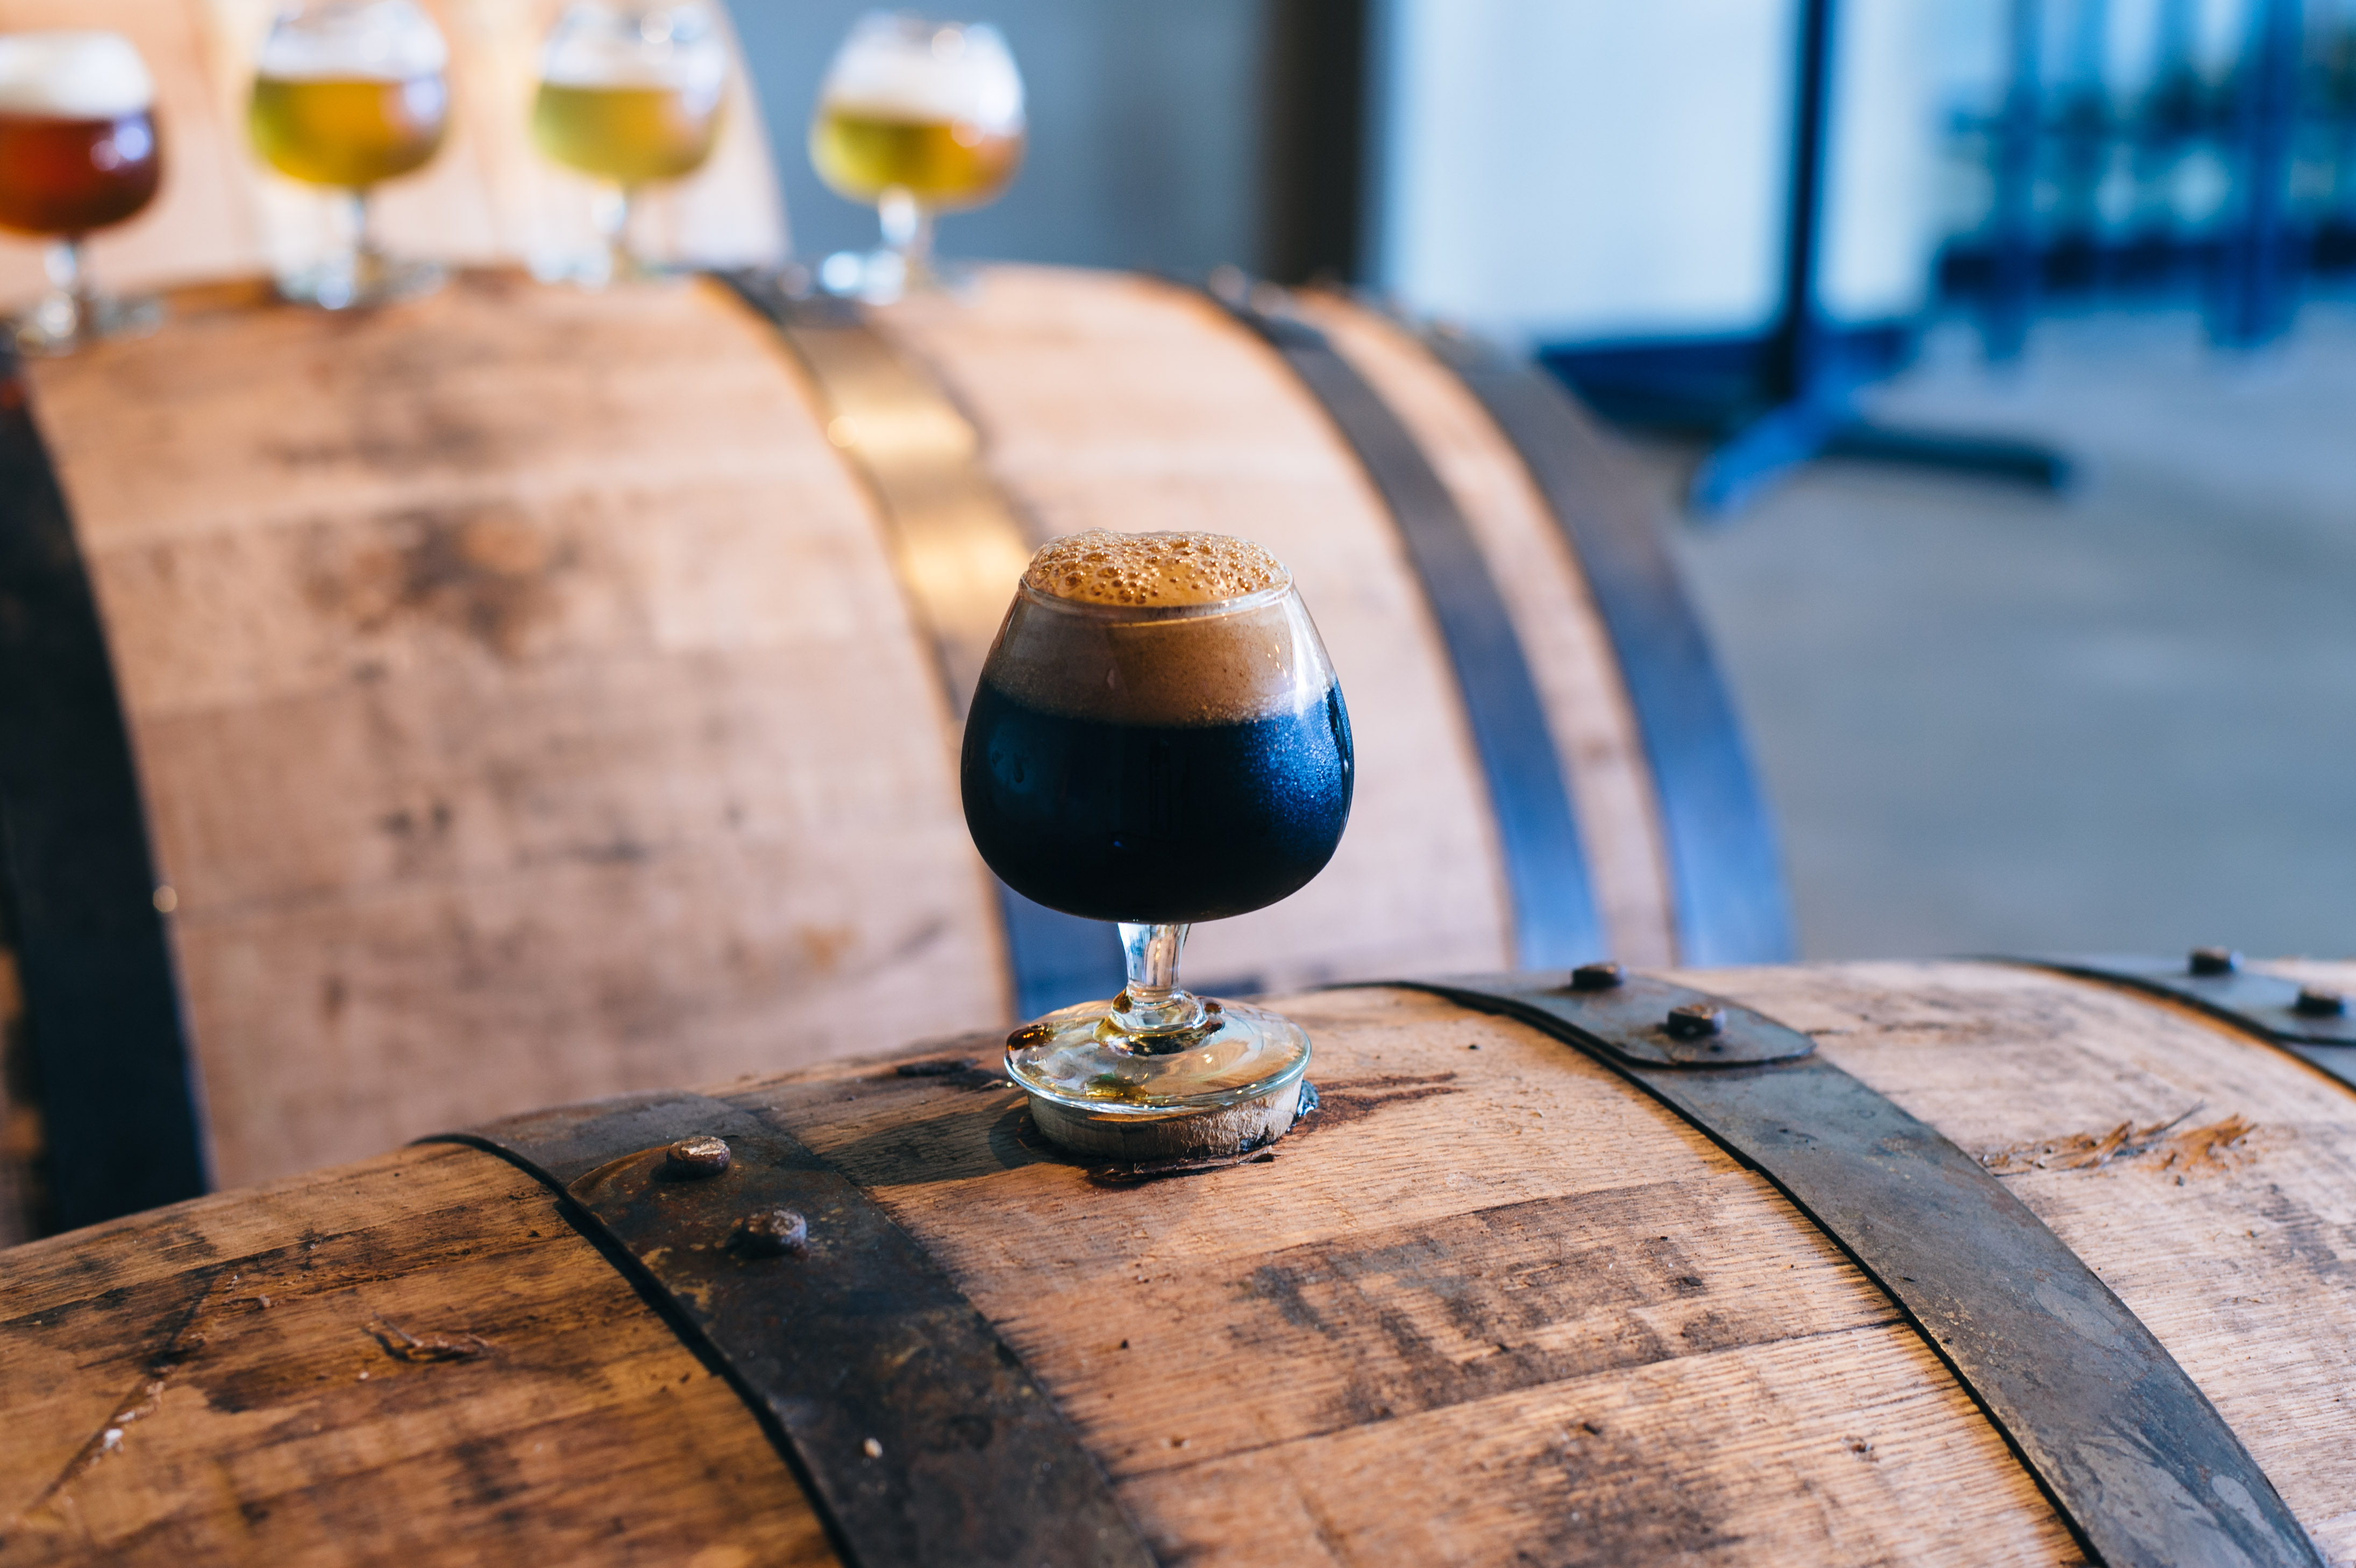 Barrel aged beer from a Denver Brewery